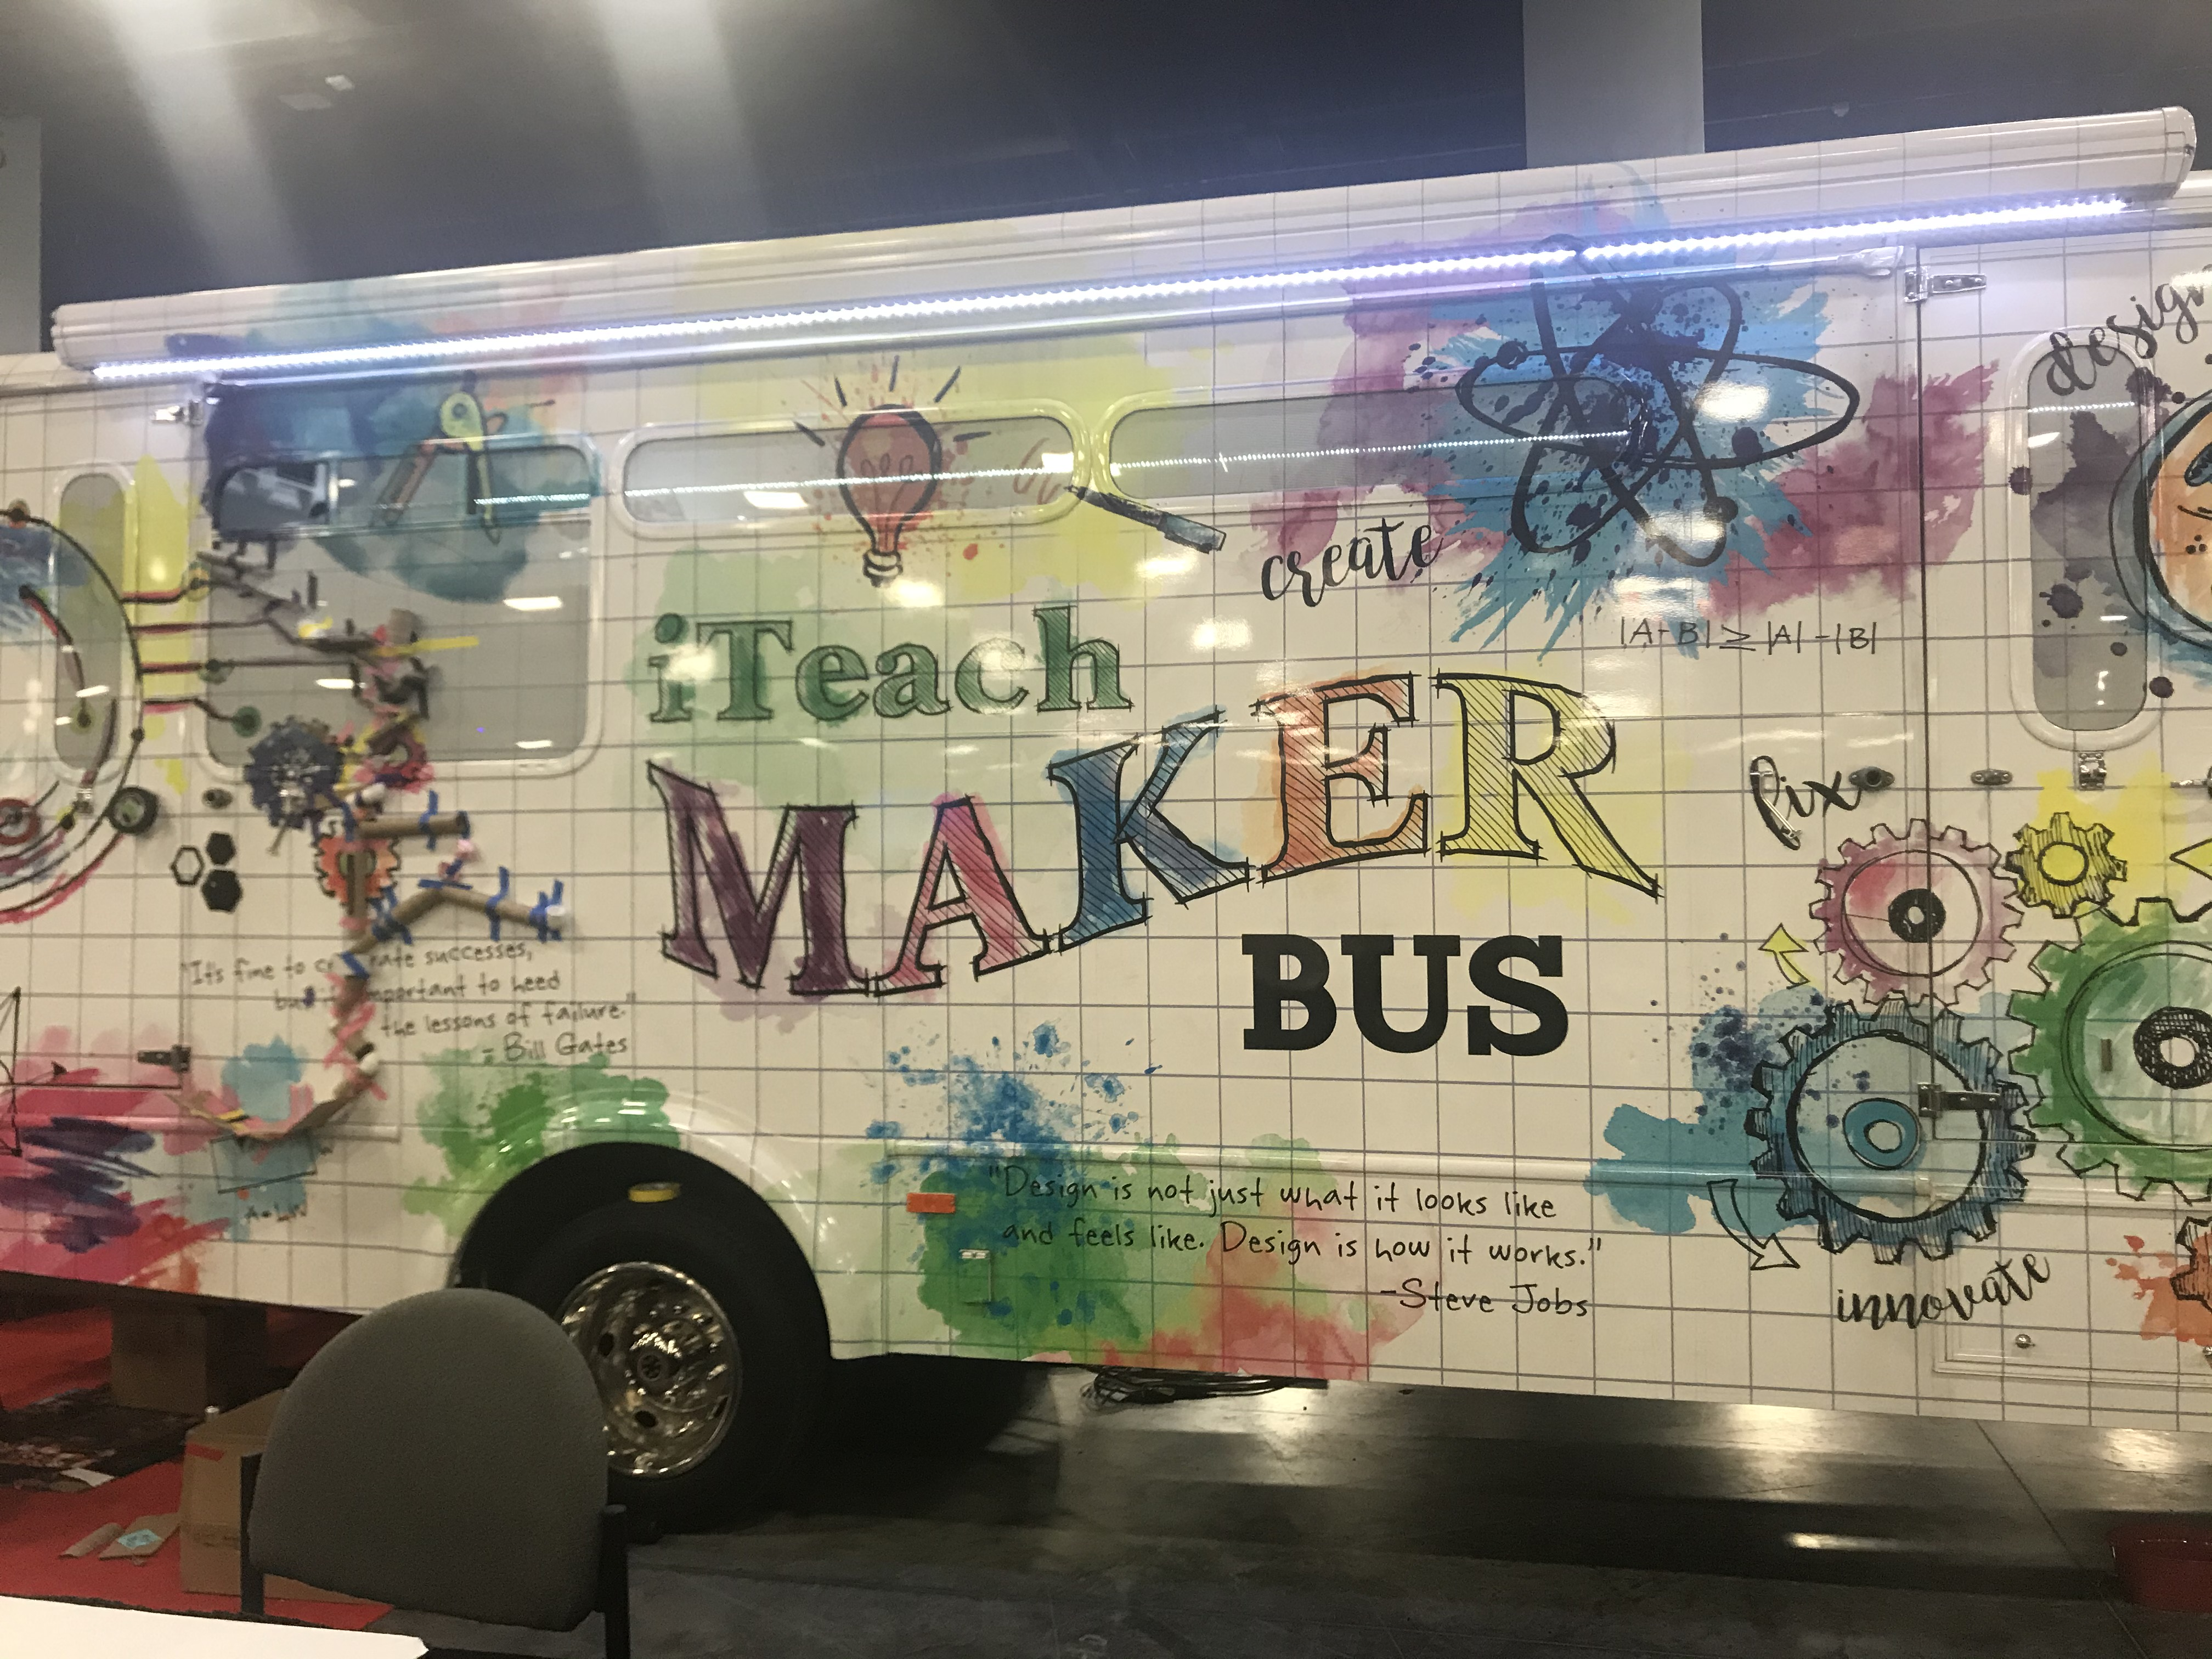 The iTeach MakerBus helps educators and students spark the pursuit of passions and ignite a desire to have a lasting impact on their communities.